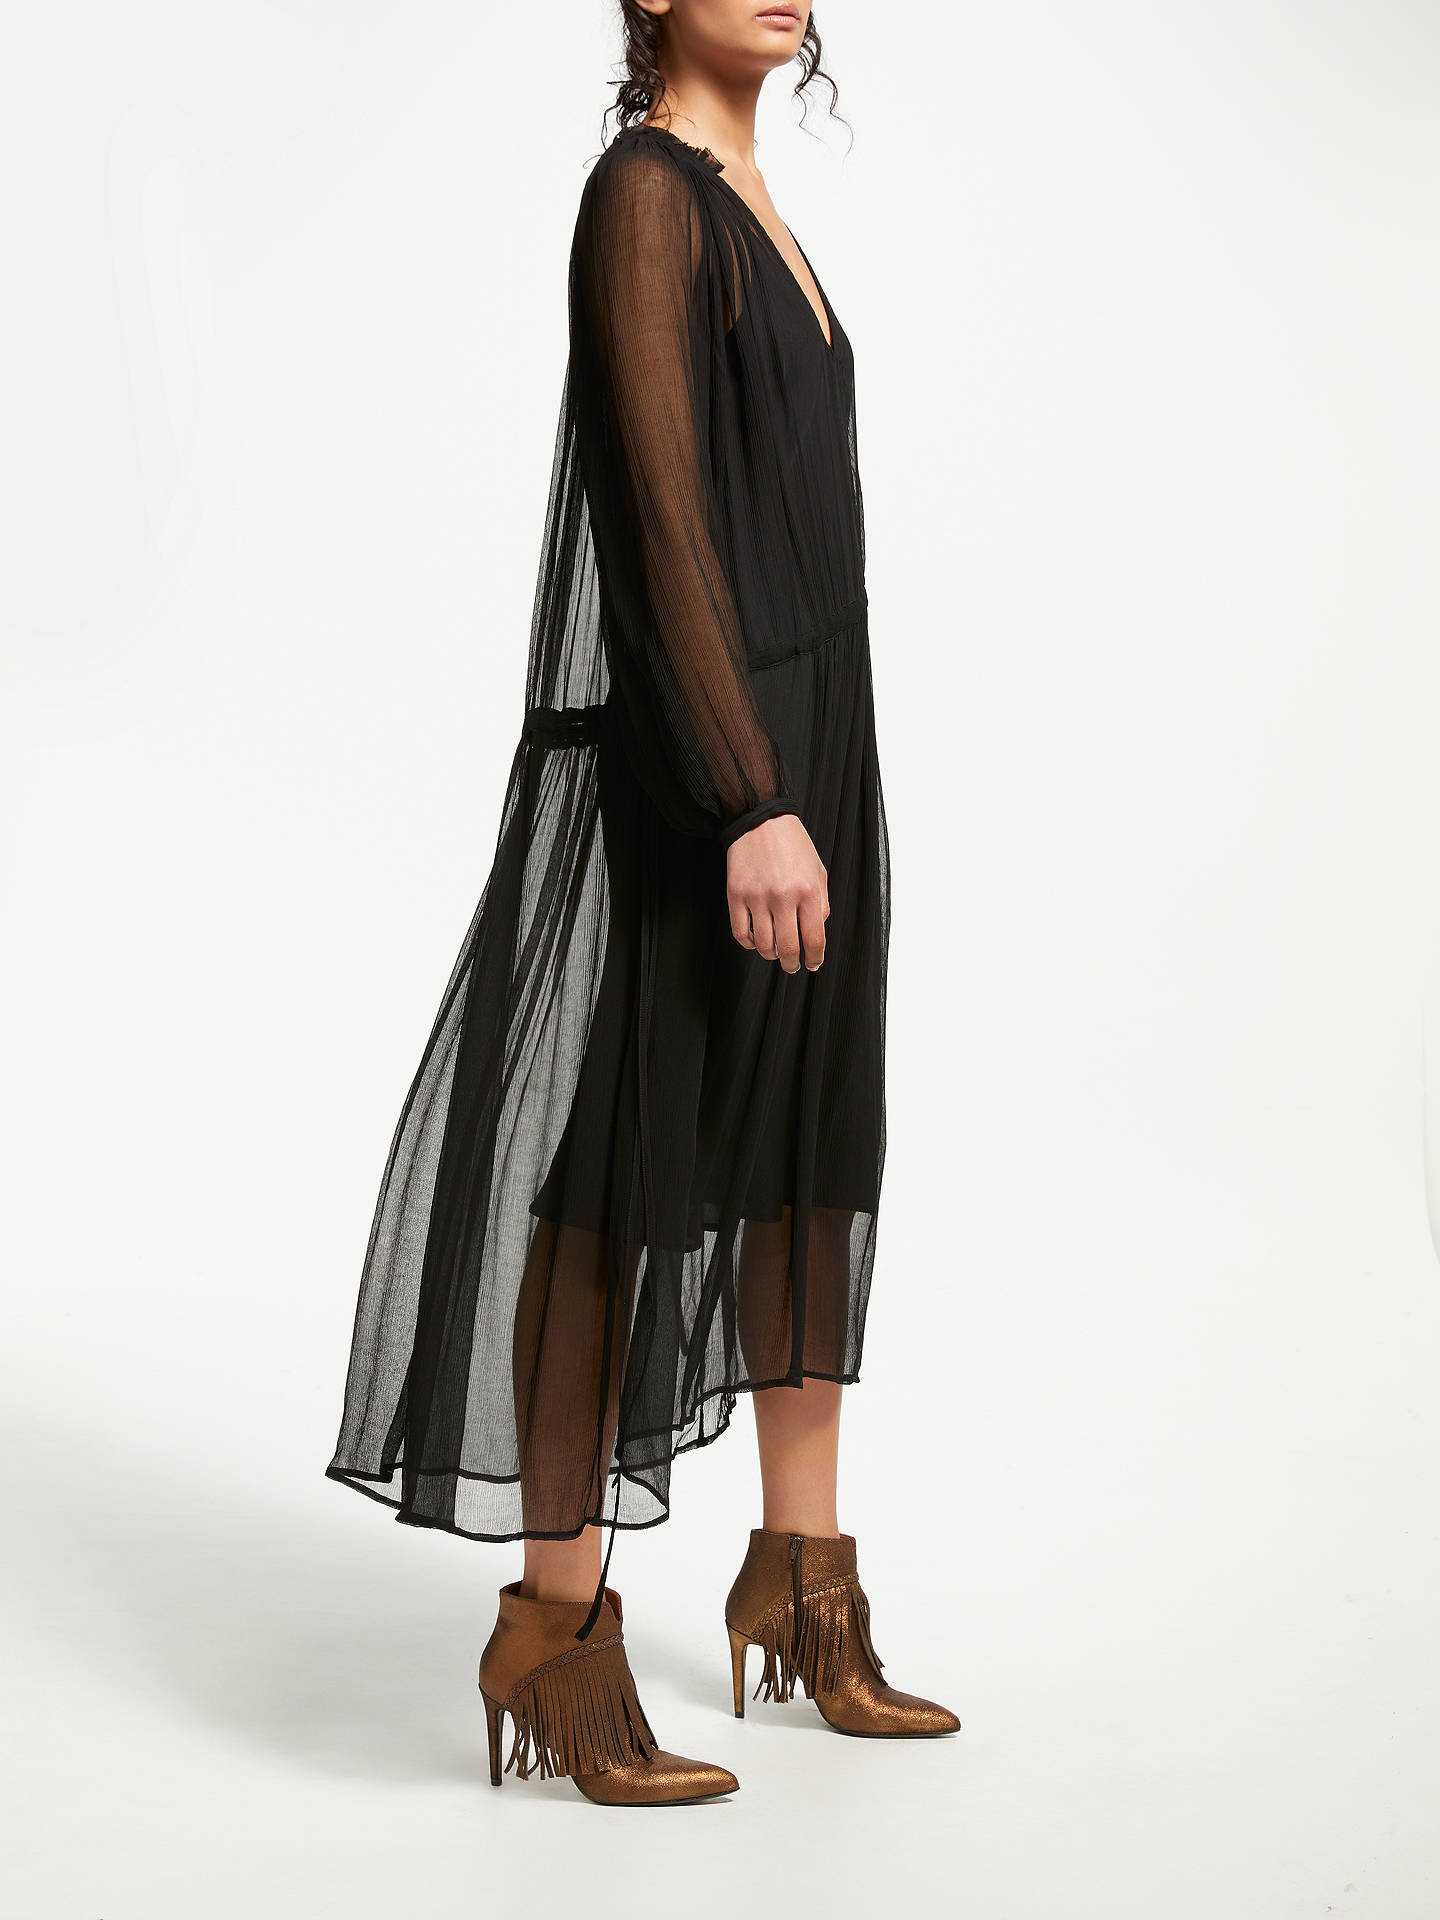 BuyAND/OR Megan Midi Dress, Black, 8 Online at johnlewis.com